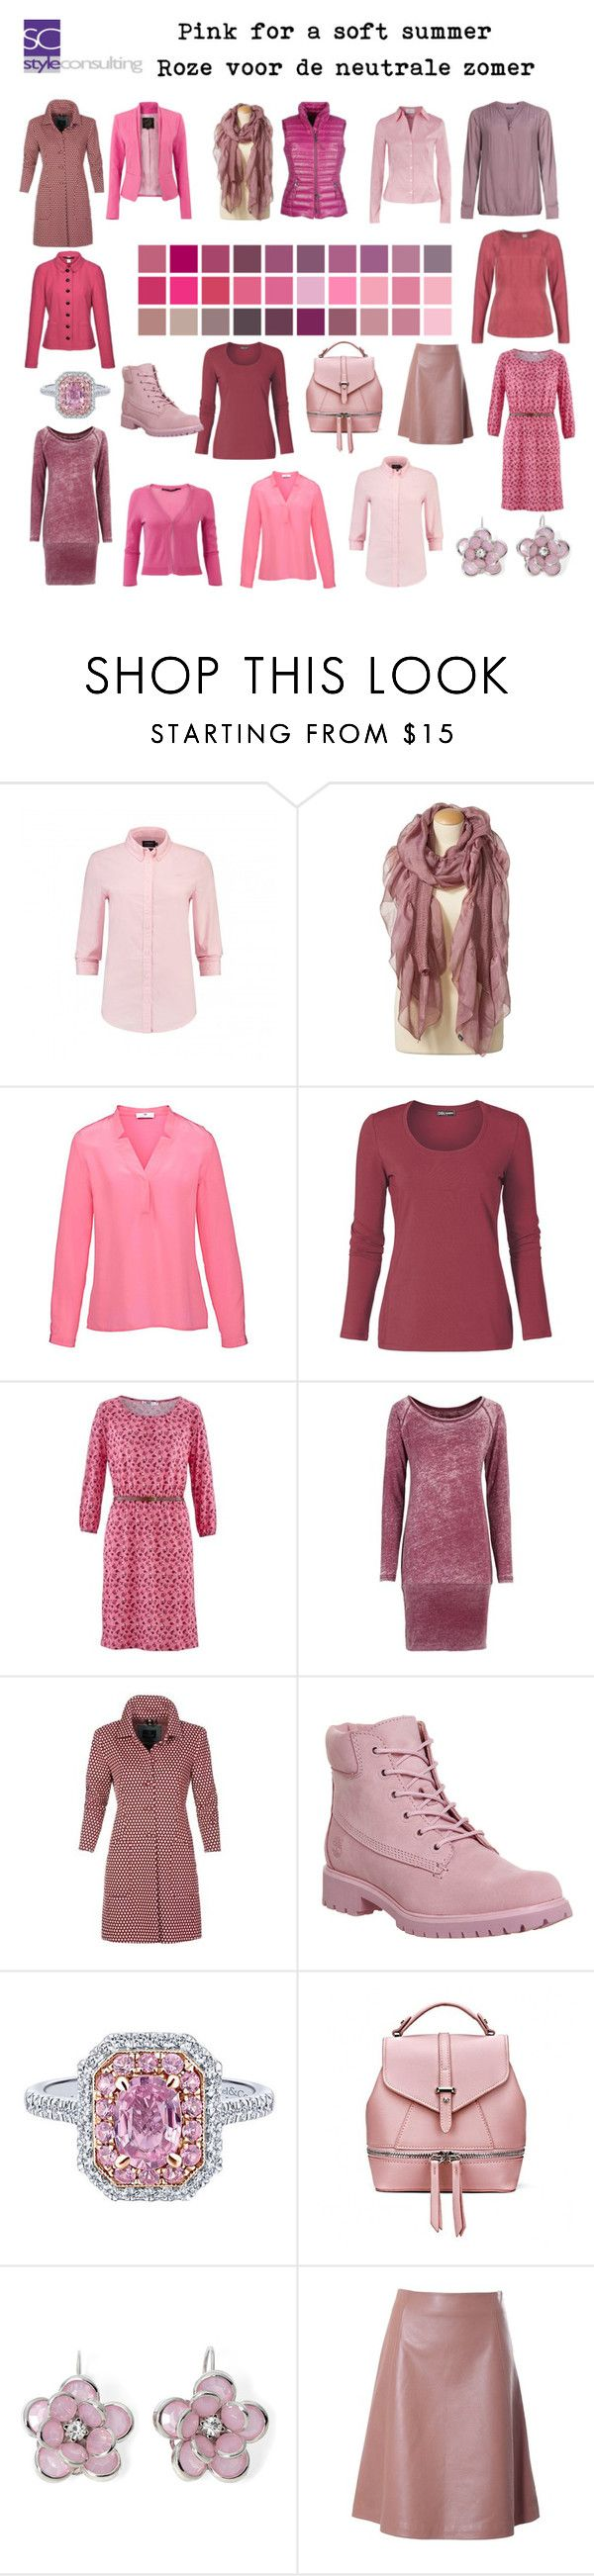 """""""Pink for a soft summer. Roze voor de neutrale zomer."""" by roorda on Polyvore featuring mode, Hahn, Basler, Timberland, Mixit en L'Autre Chose"""